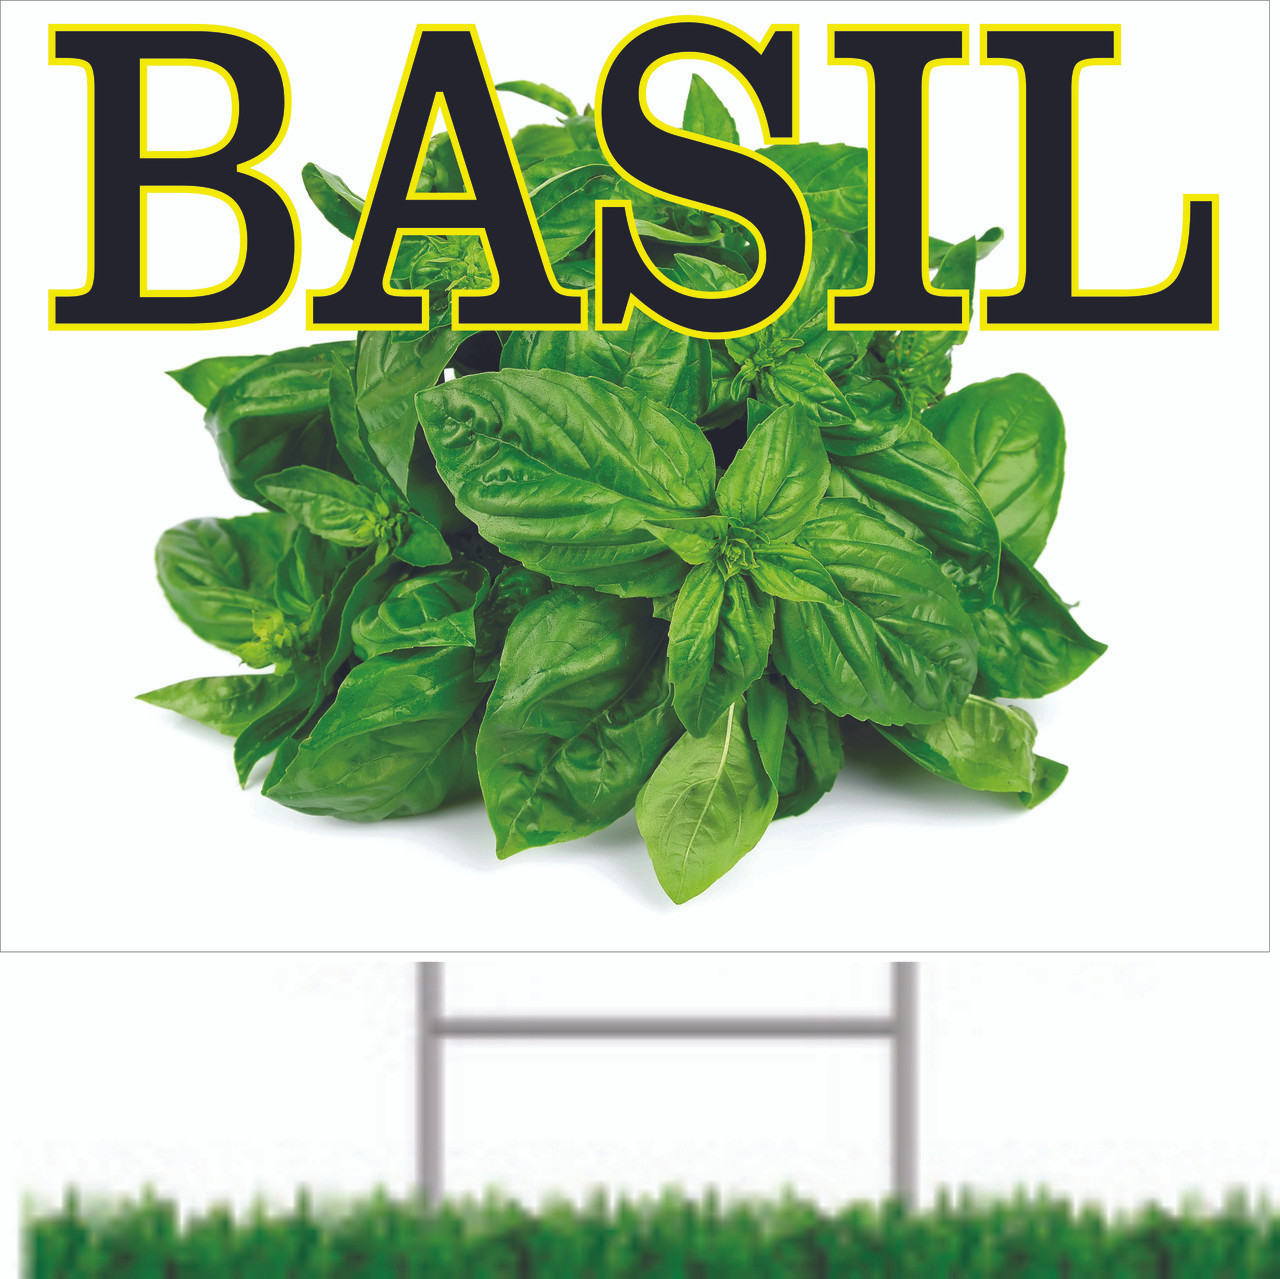 Basil Road Sign One of Many Spice Signs from Stop The Traffic.